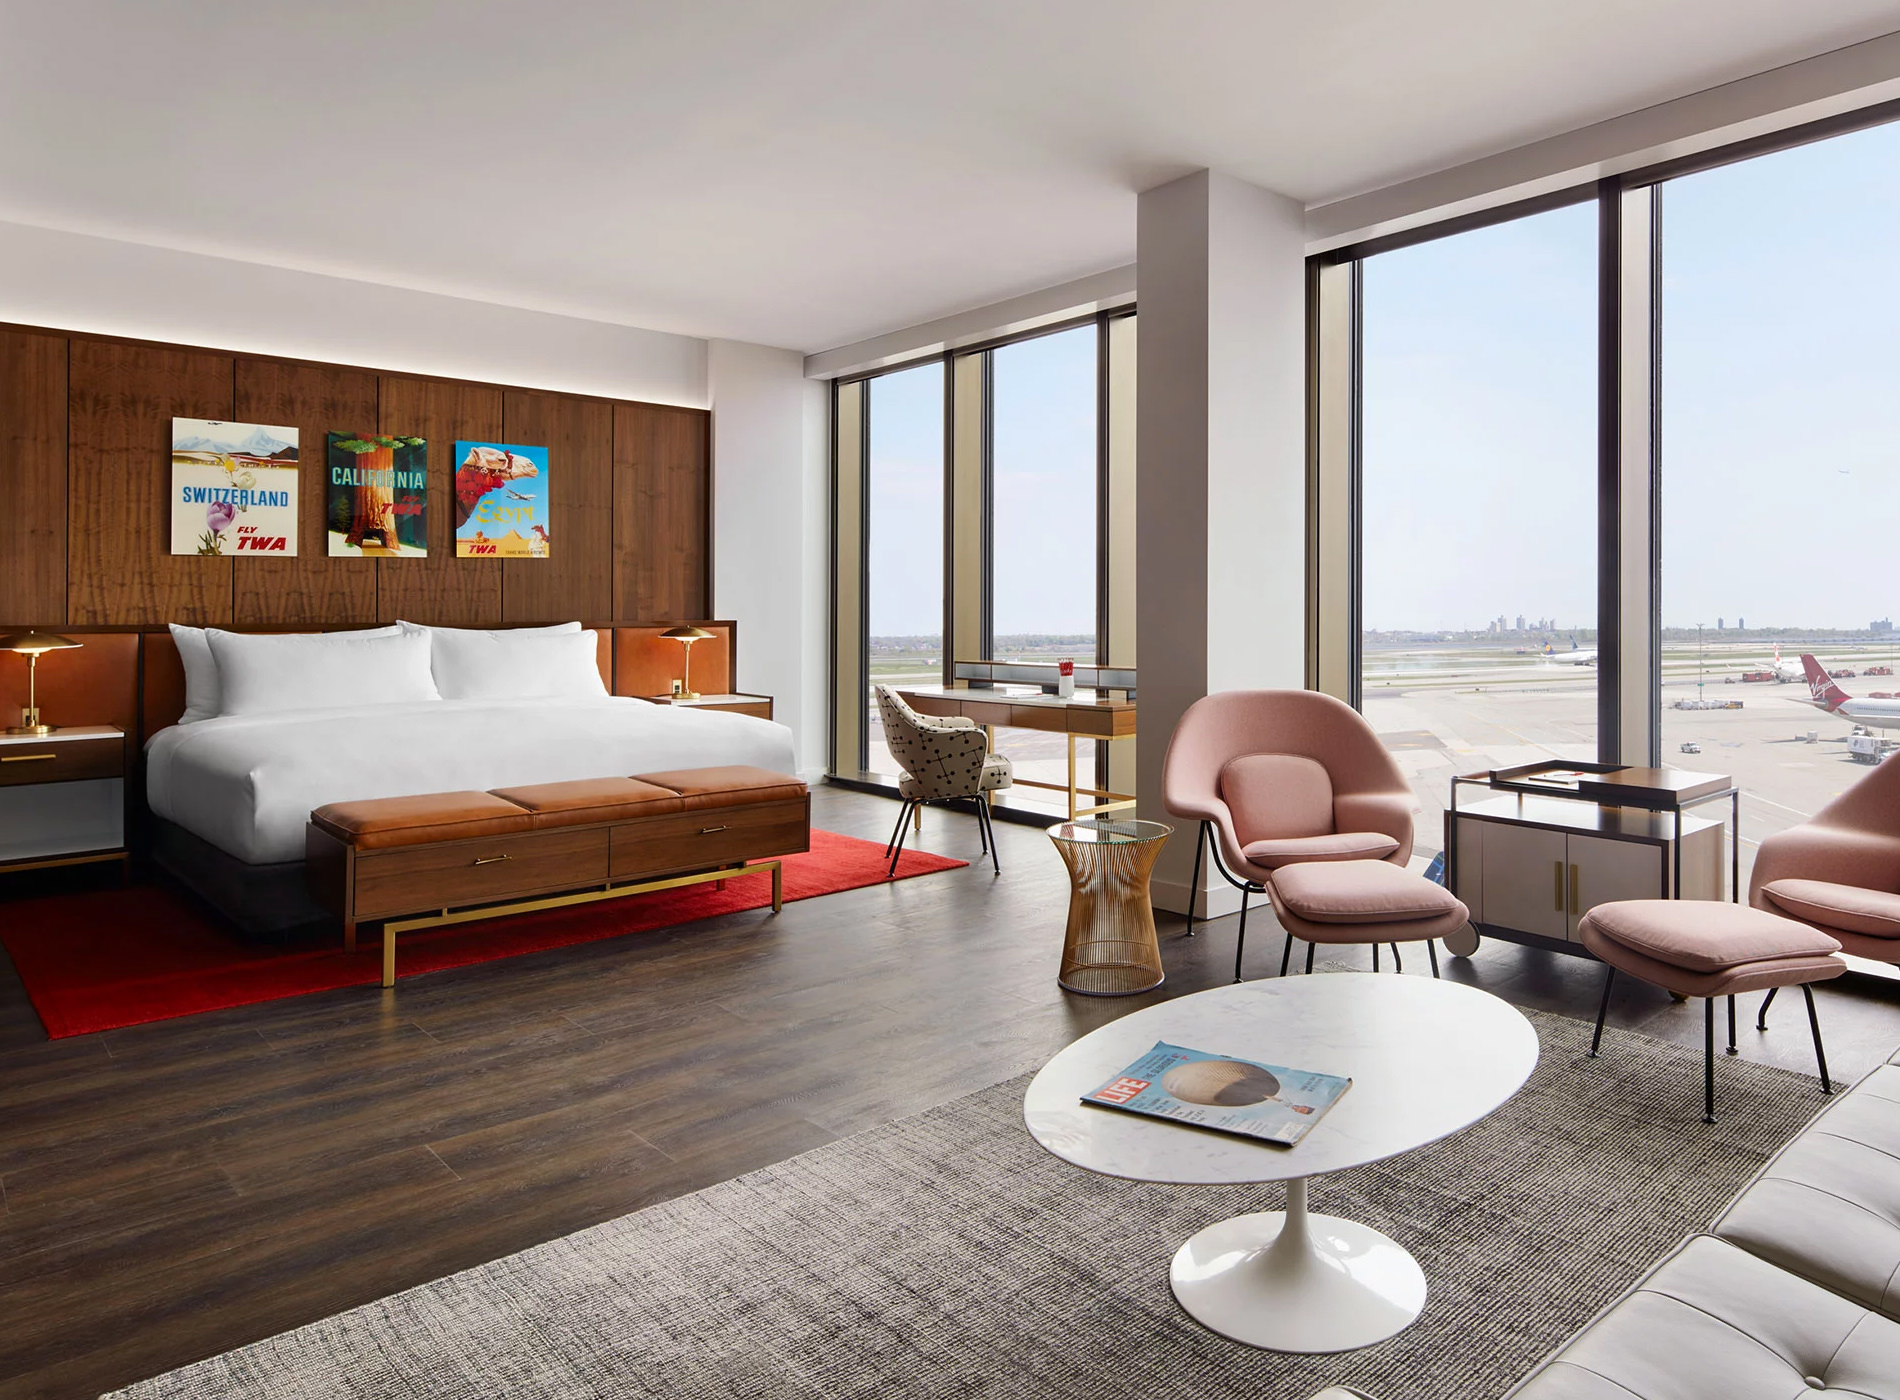 TWA Hotel New York JFK Airport TWA Flight Center Eero Saarinen Presidential Suite With Historic TWA View